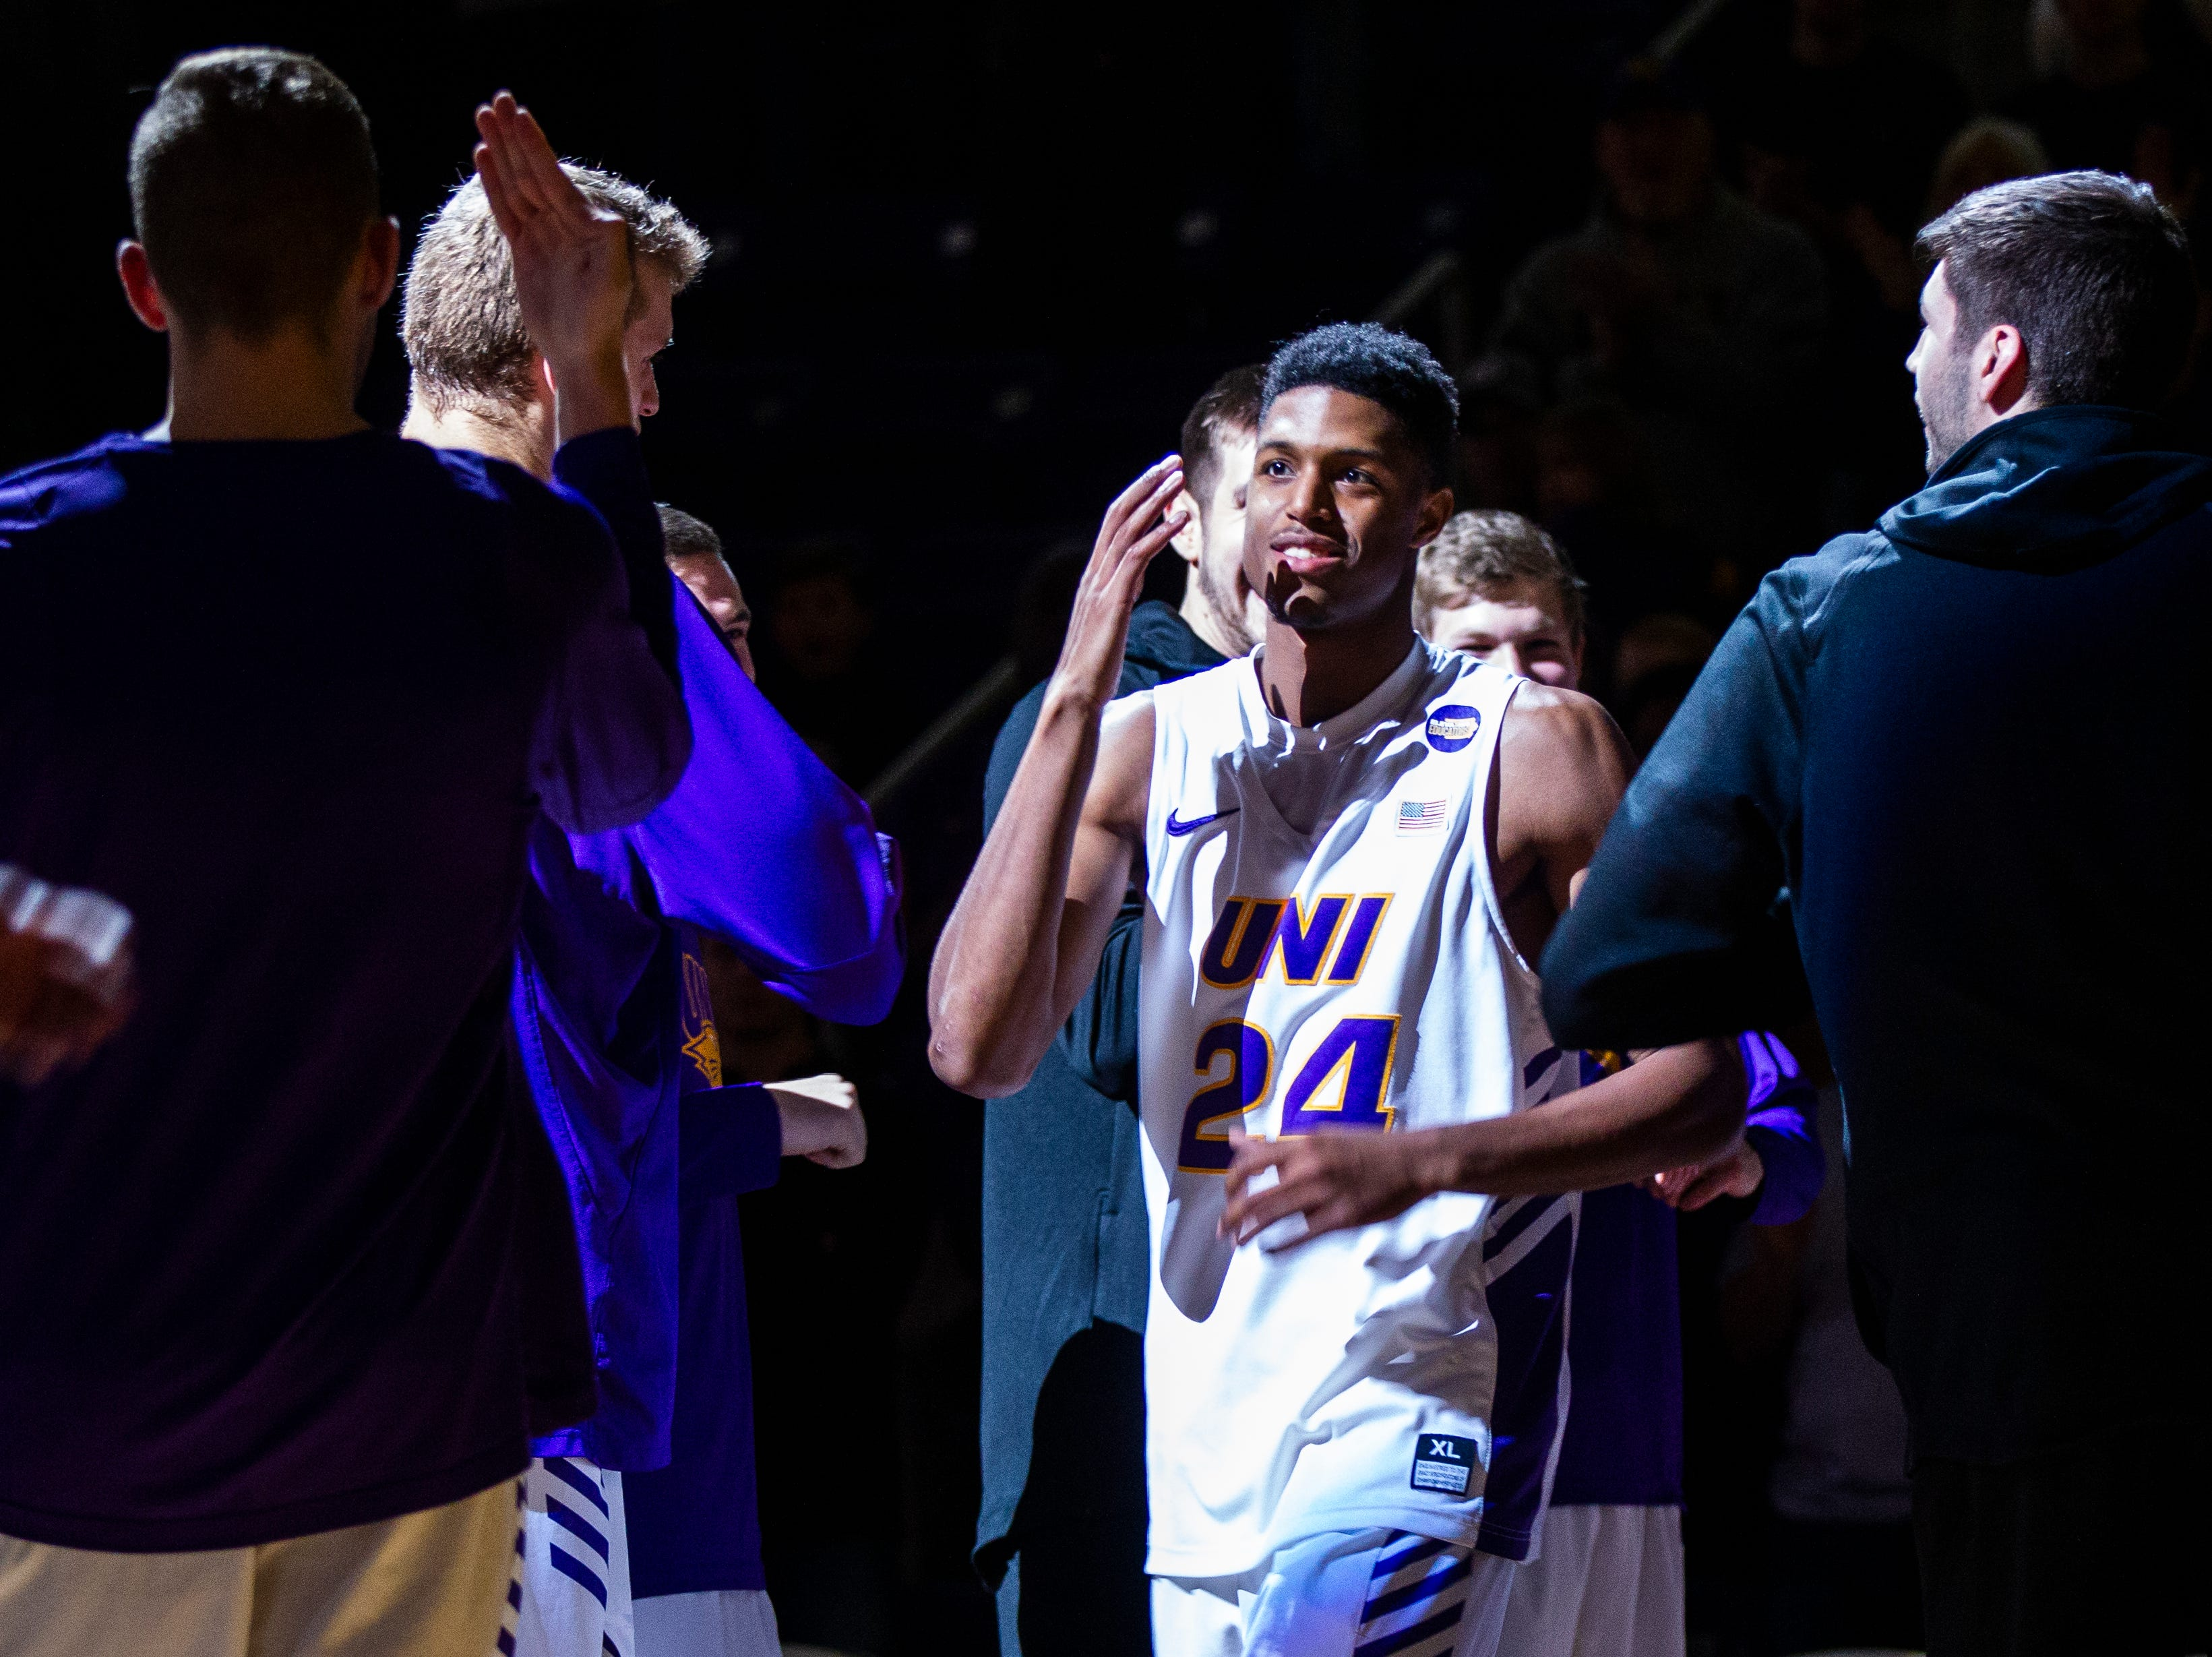 Northern Iowa guard Isaiah Brown (24) gets introduced during a NCAA Missouri Valley Conference men's basketball game on Saturday, Jan. 5, 2019, at the McLeod Center in Cedar Falls, Iowa.